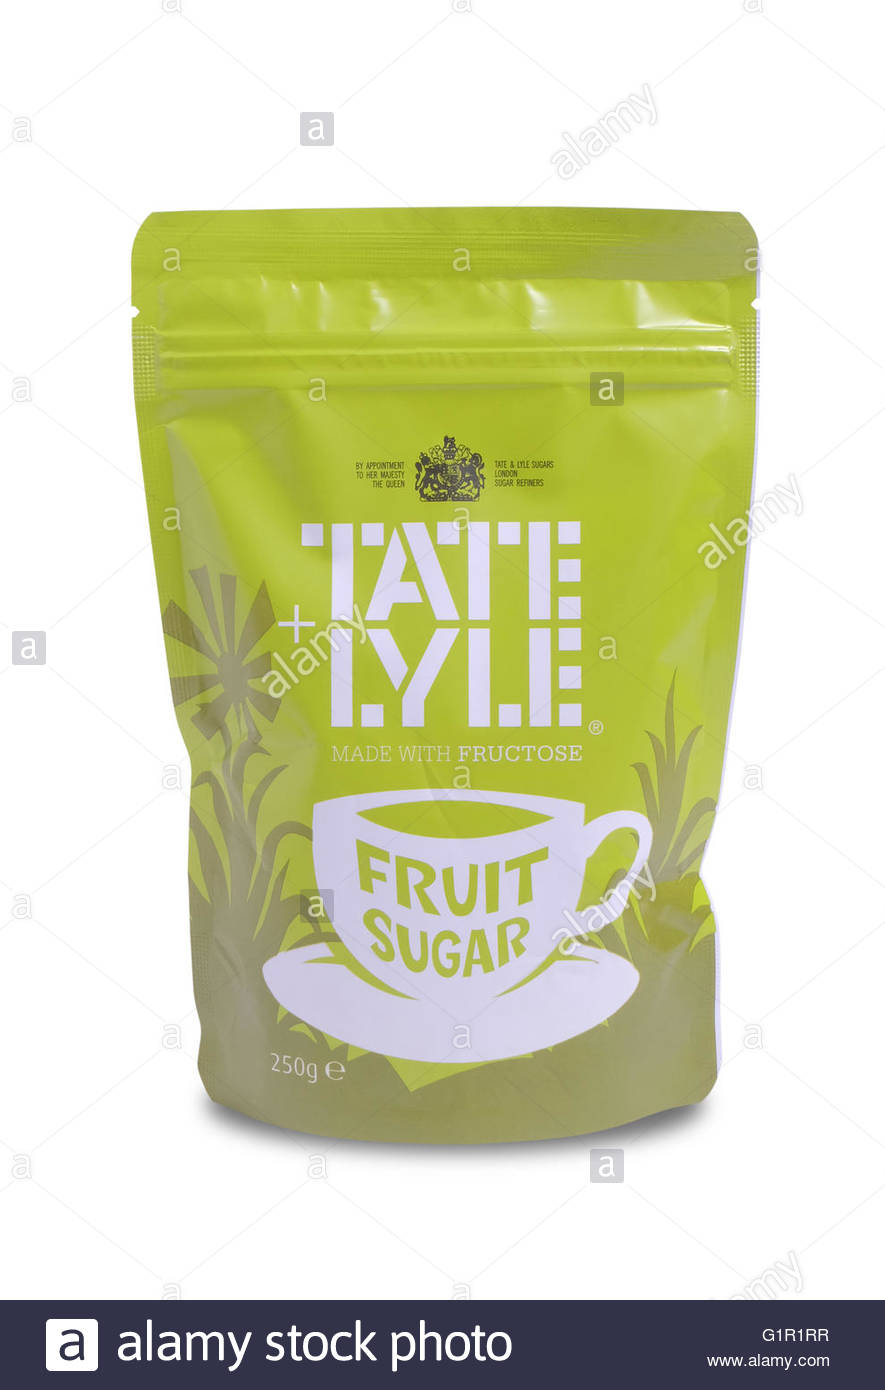 Pack of Fruit Sugar made by Tate and Lyle. a refined sugar made with fructose. isolated on white background with - Stock Image